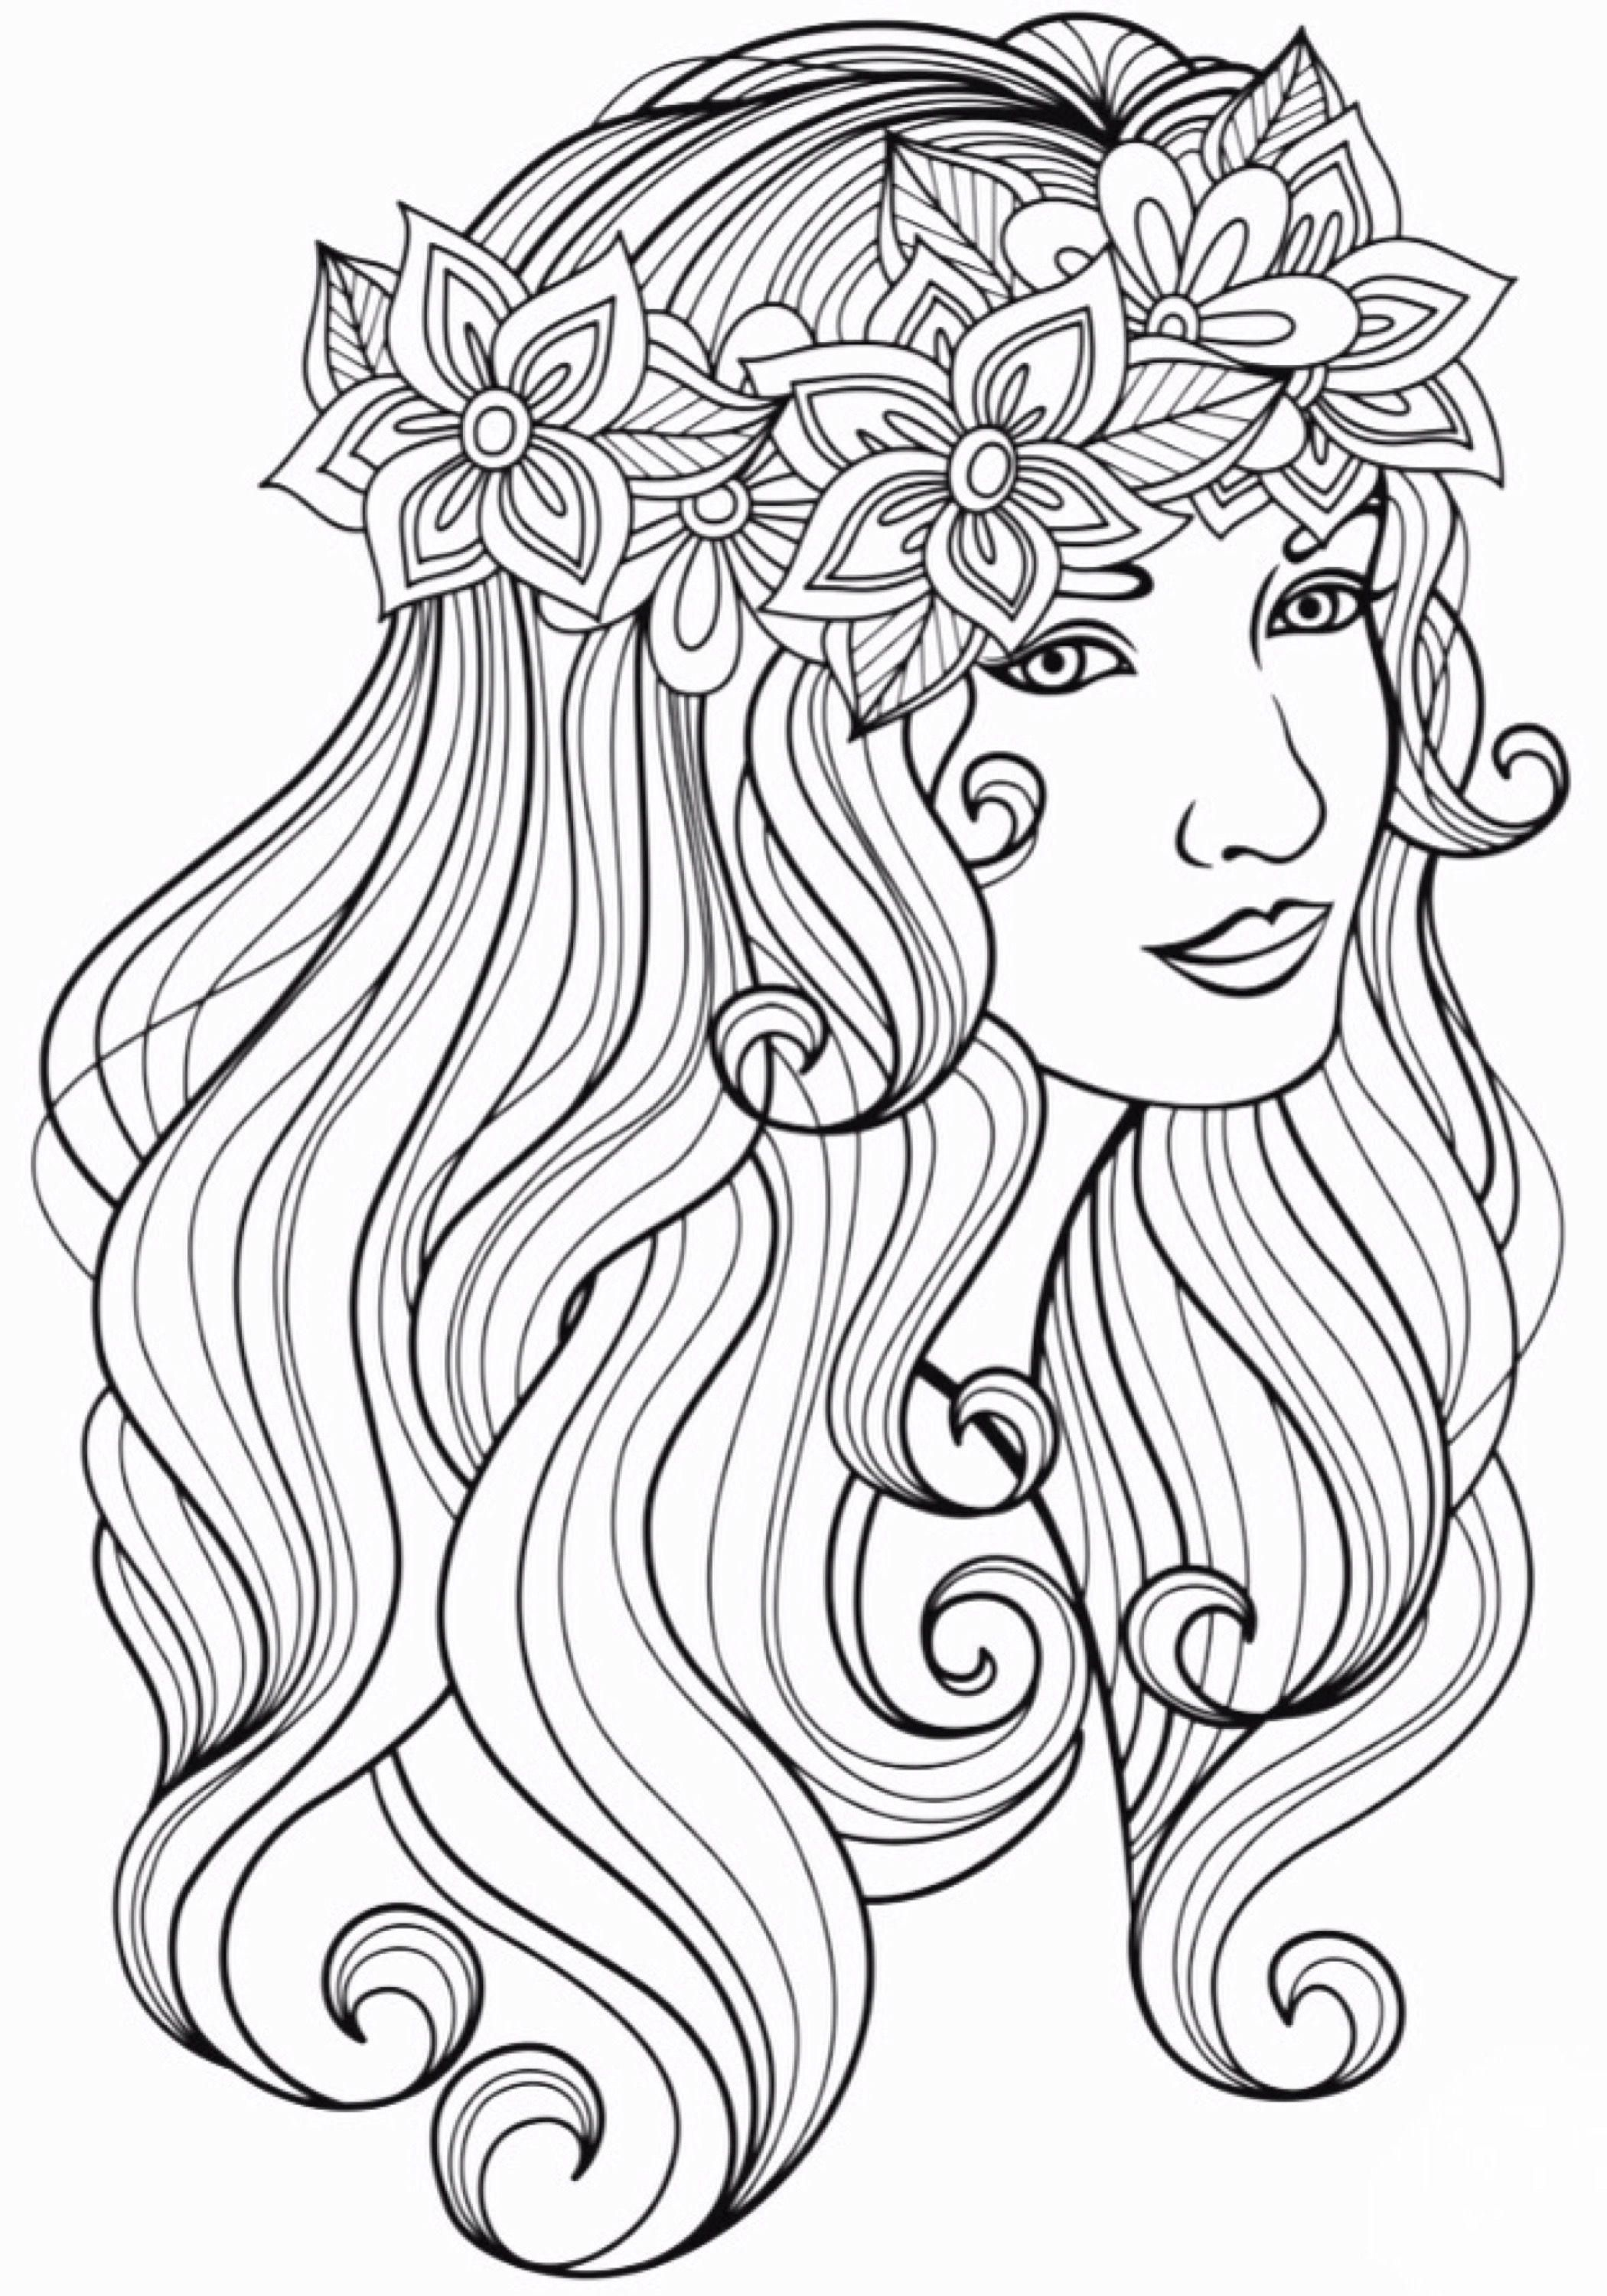 10 Coloring Page Woman Coloring Pages People Coloring Pages Free Coloring Pages